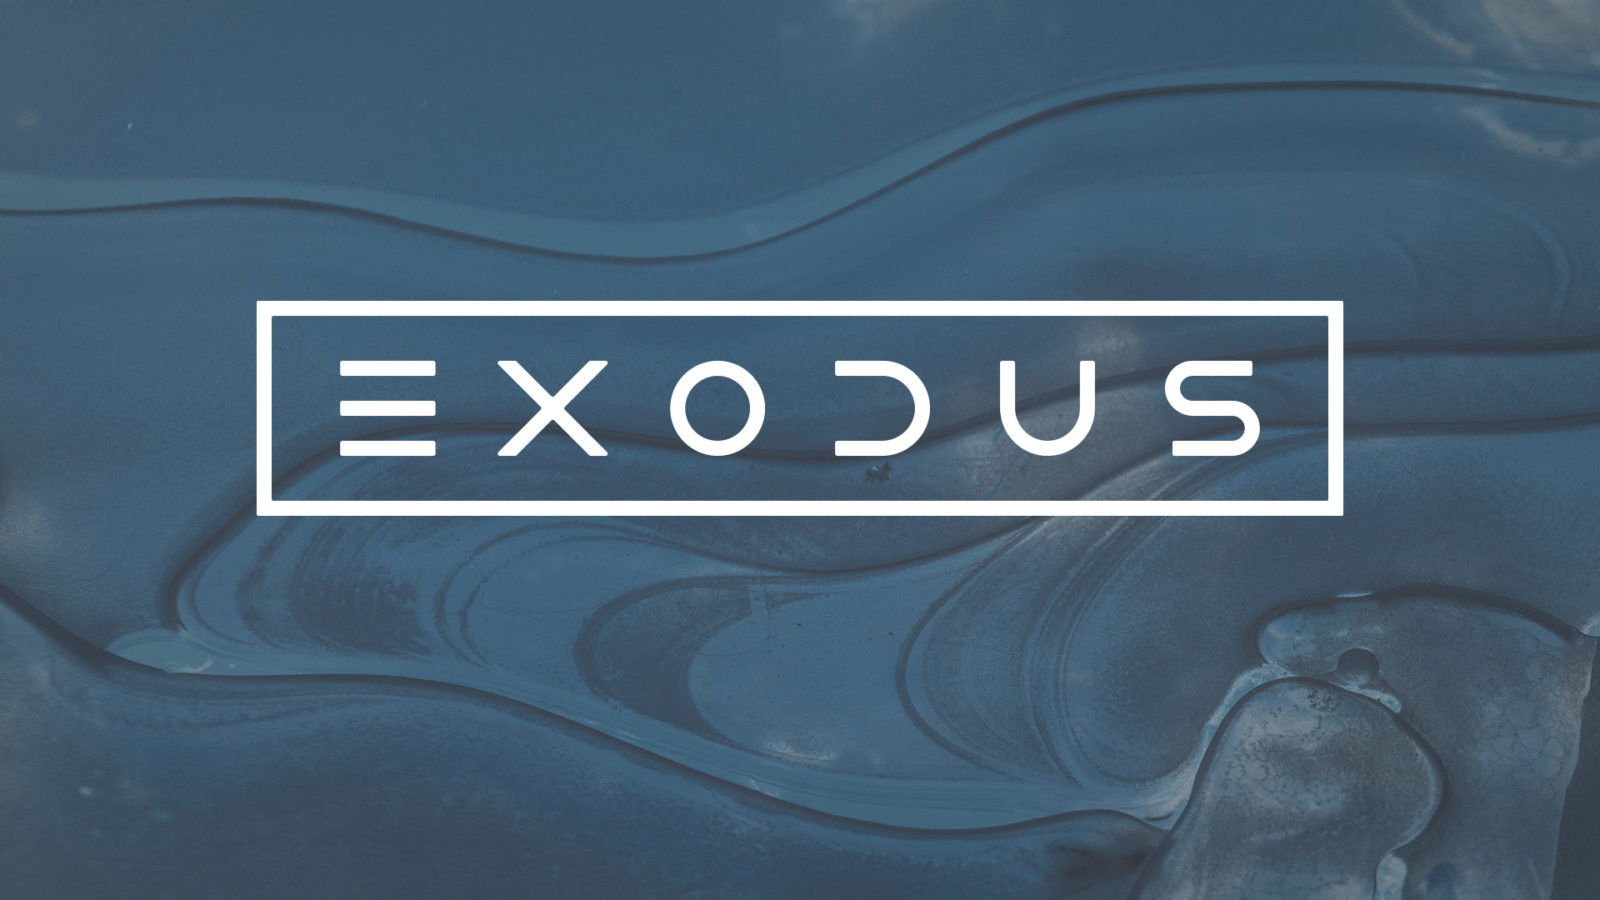 Church Online - Exodus Week 6